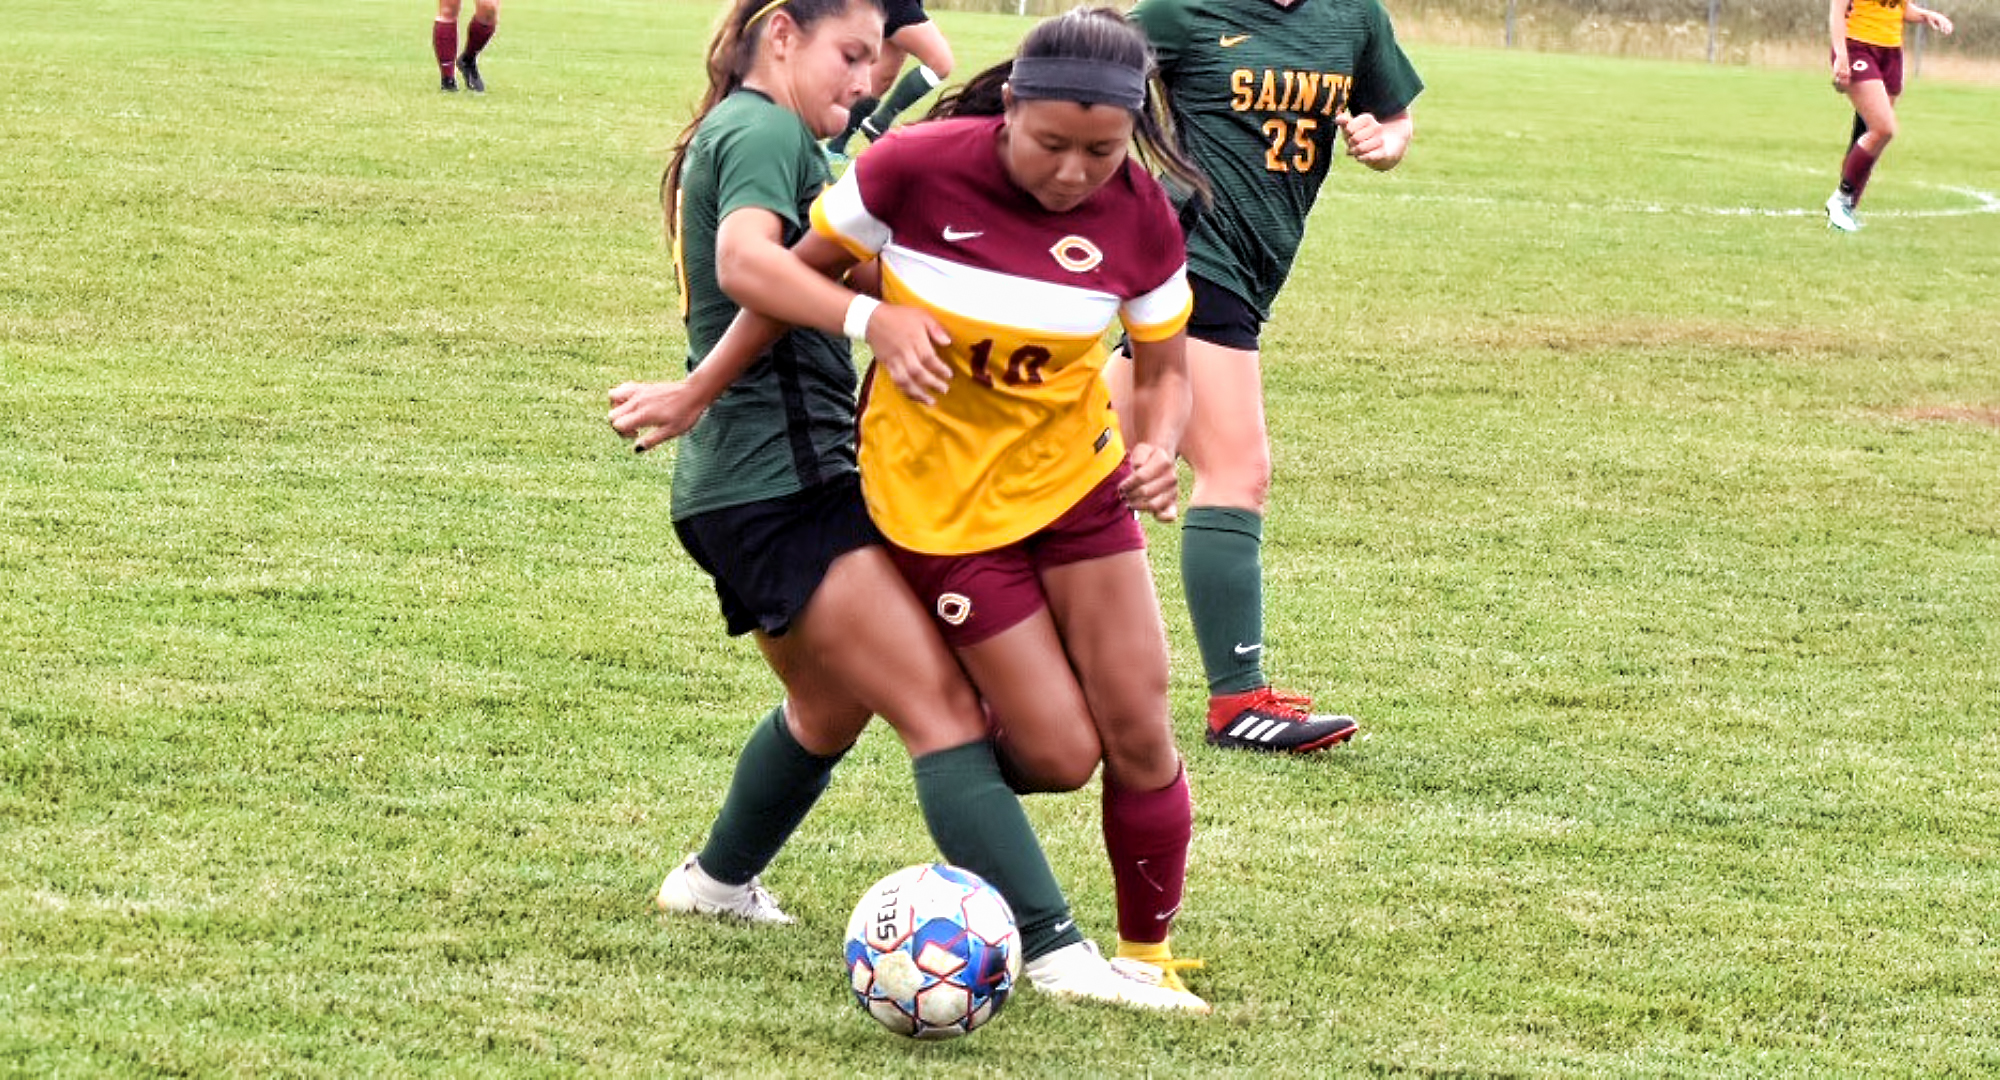 Sophomore Kay Franzese takes control of the ball against a Presentation defender. She scored the game-winning goal which was her first collegiate strike. (Photo courtesy of Vince Arnold)